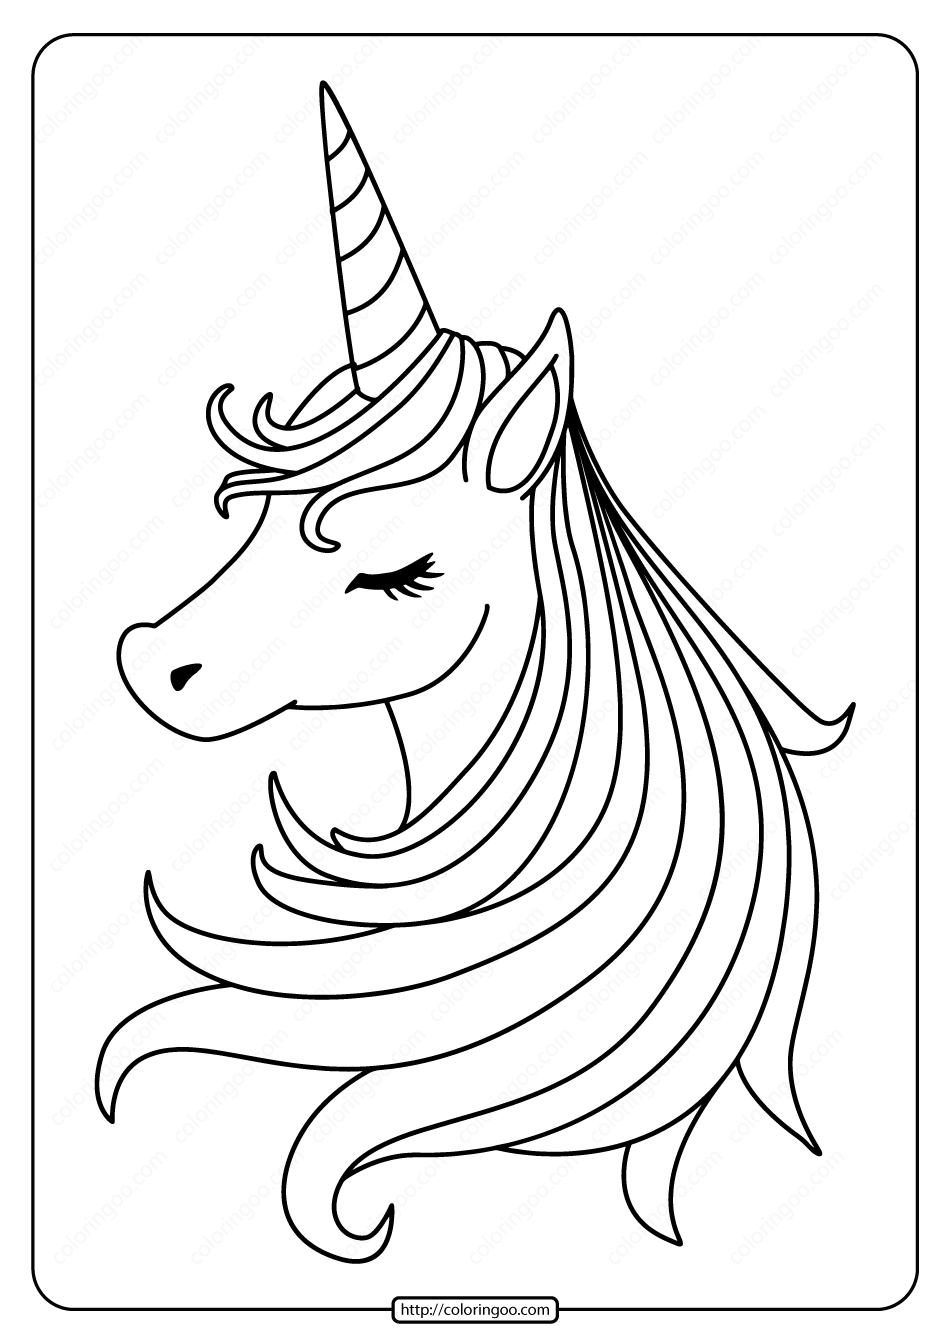 Free Printable Sleeping Unicorn Pdf Coloring Page